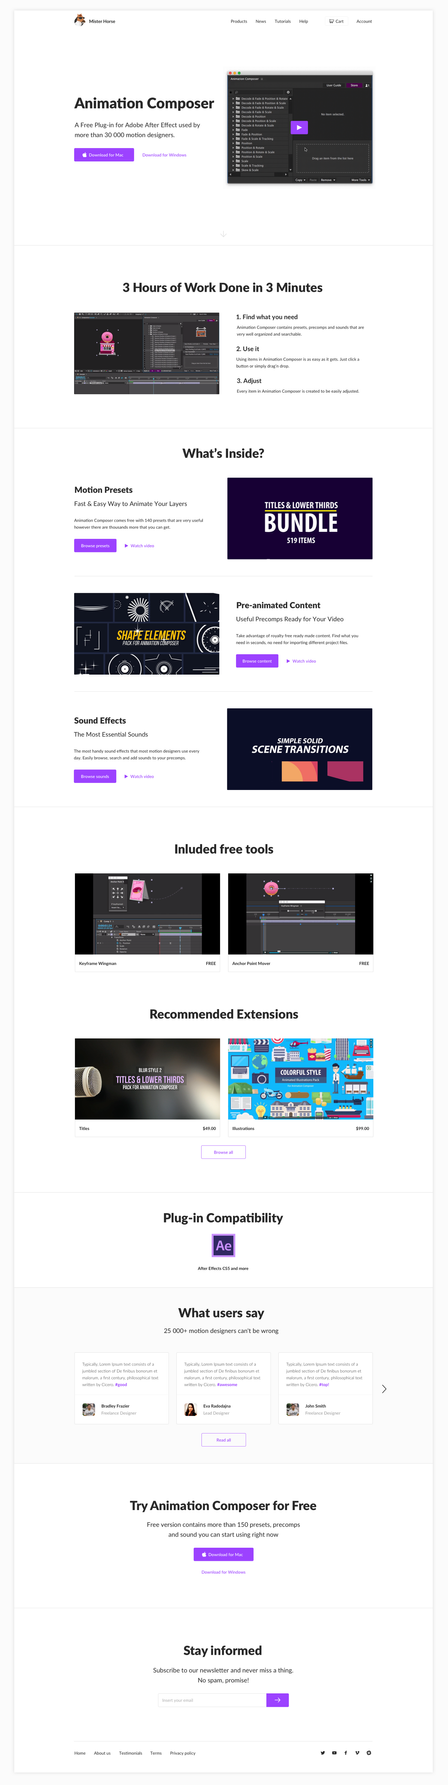 Homepage for Animation Composer by jozef89